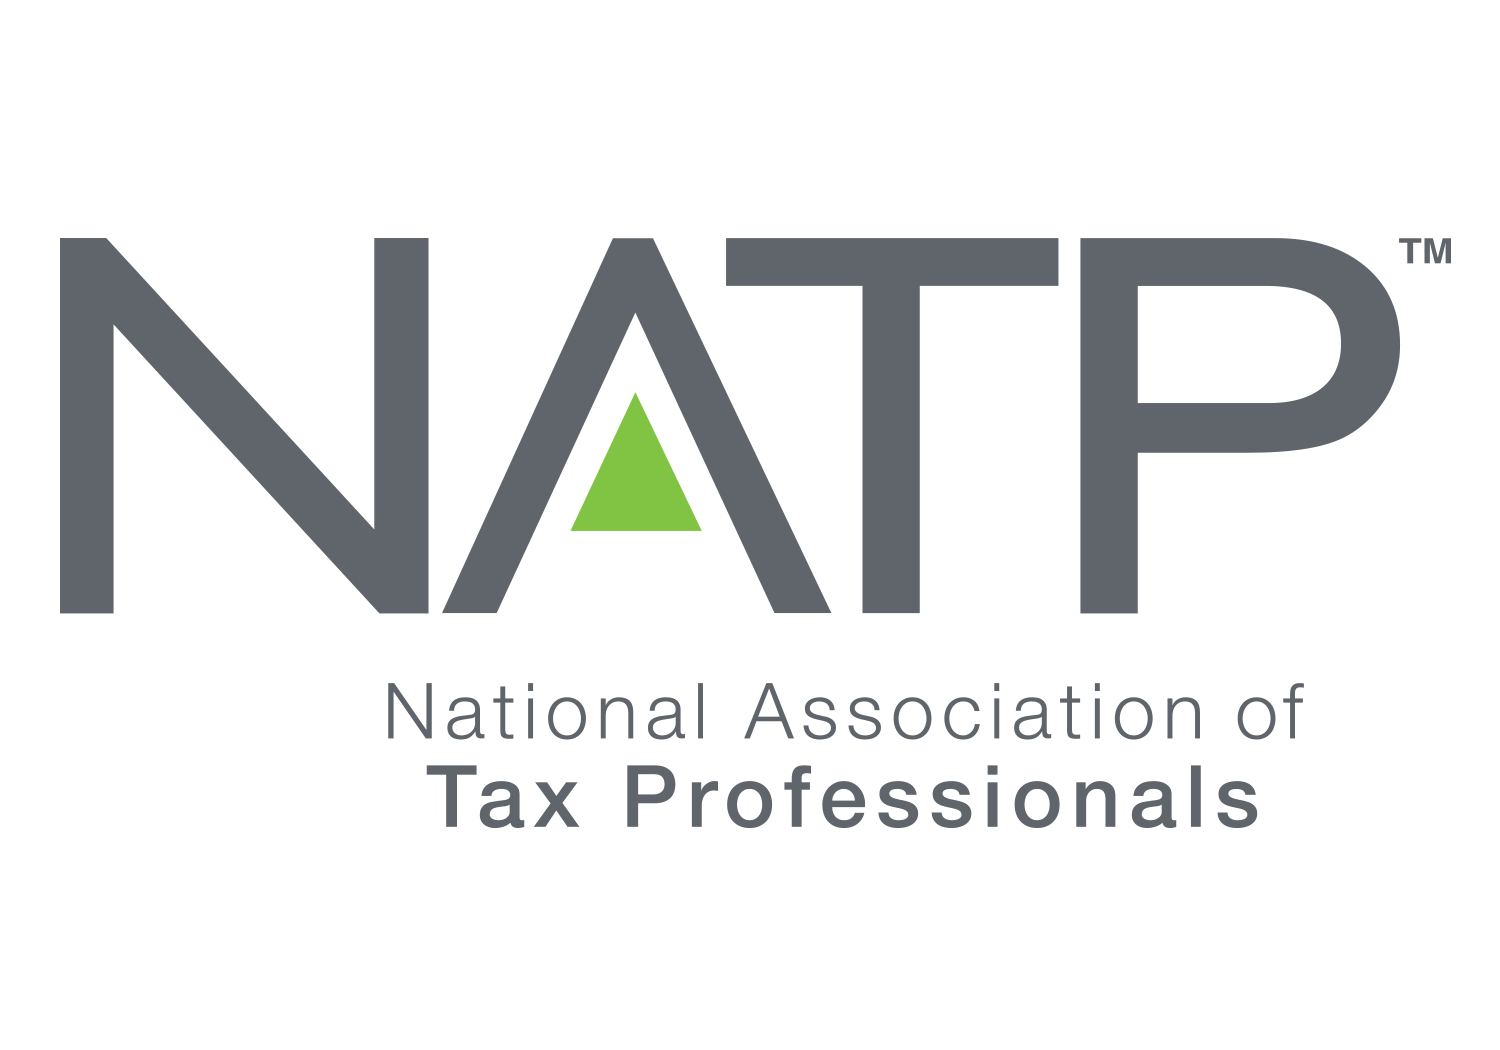 National Associations of Tax Professionals